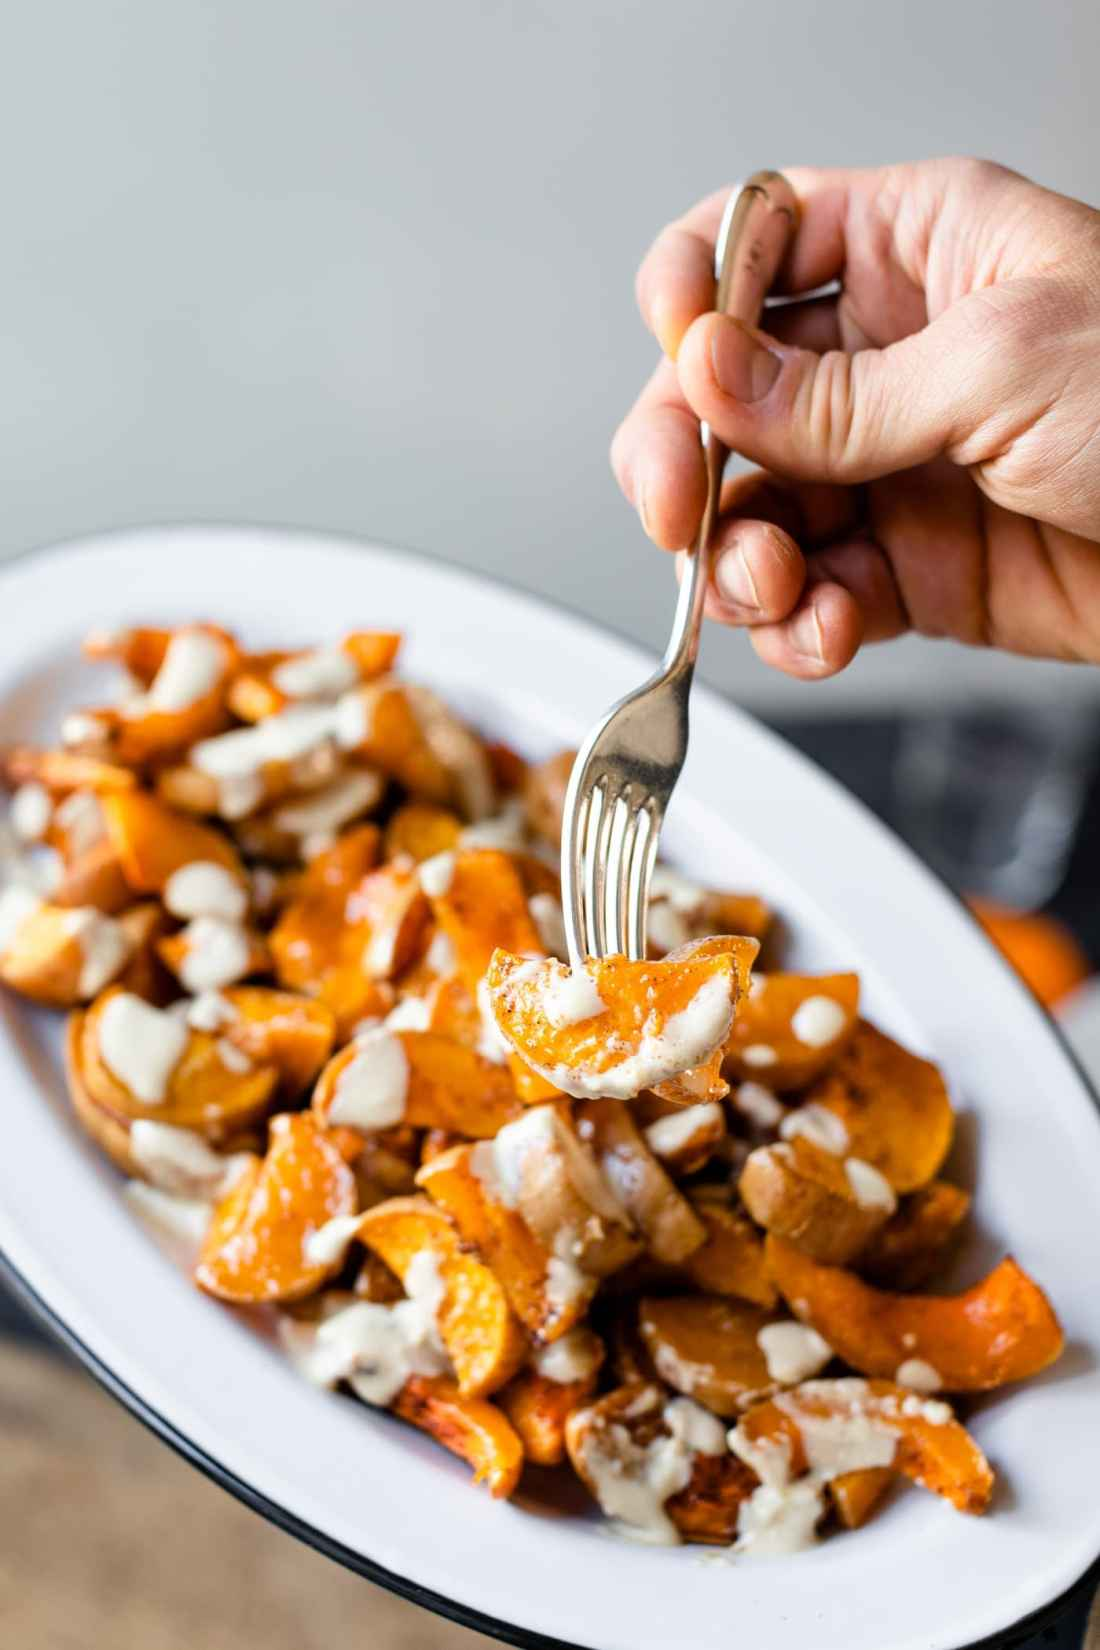 Piece of spiced butternut squash drizzled with white tahini sauce on a fork being held with platter in background on gray slate surface